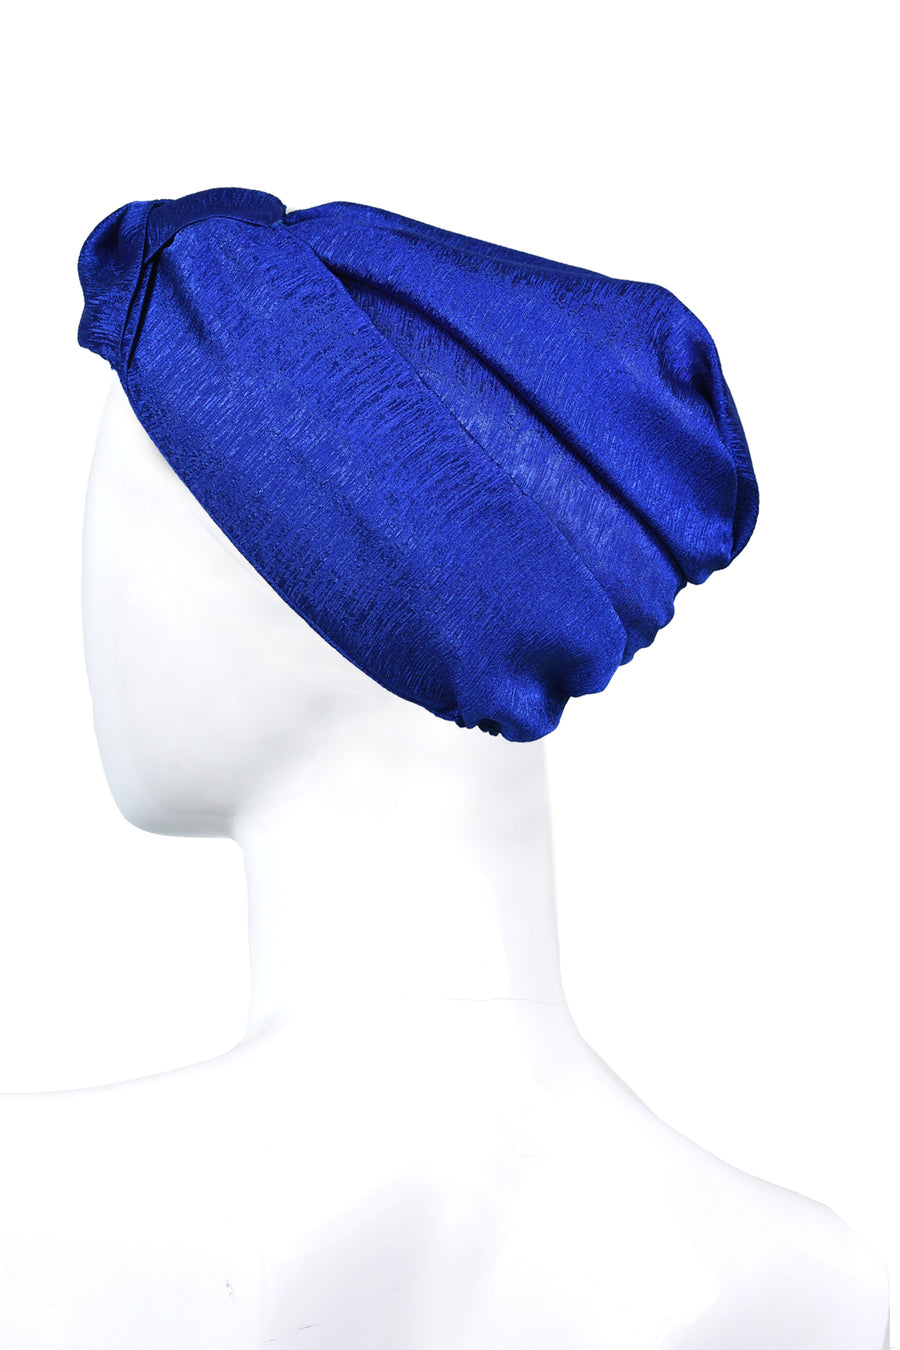 NEW TURBAN DESIGN ! Saint Ouen !